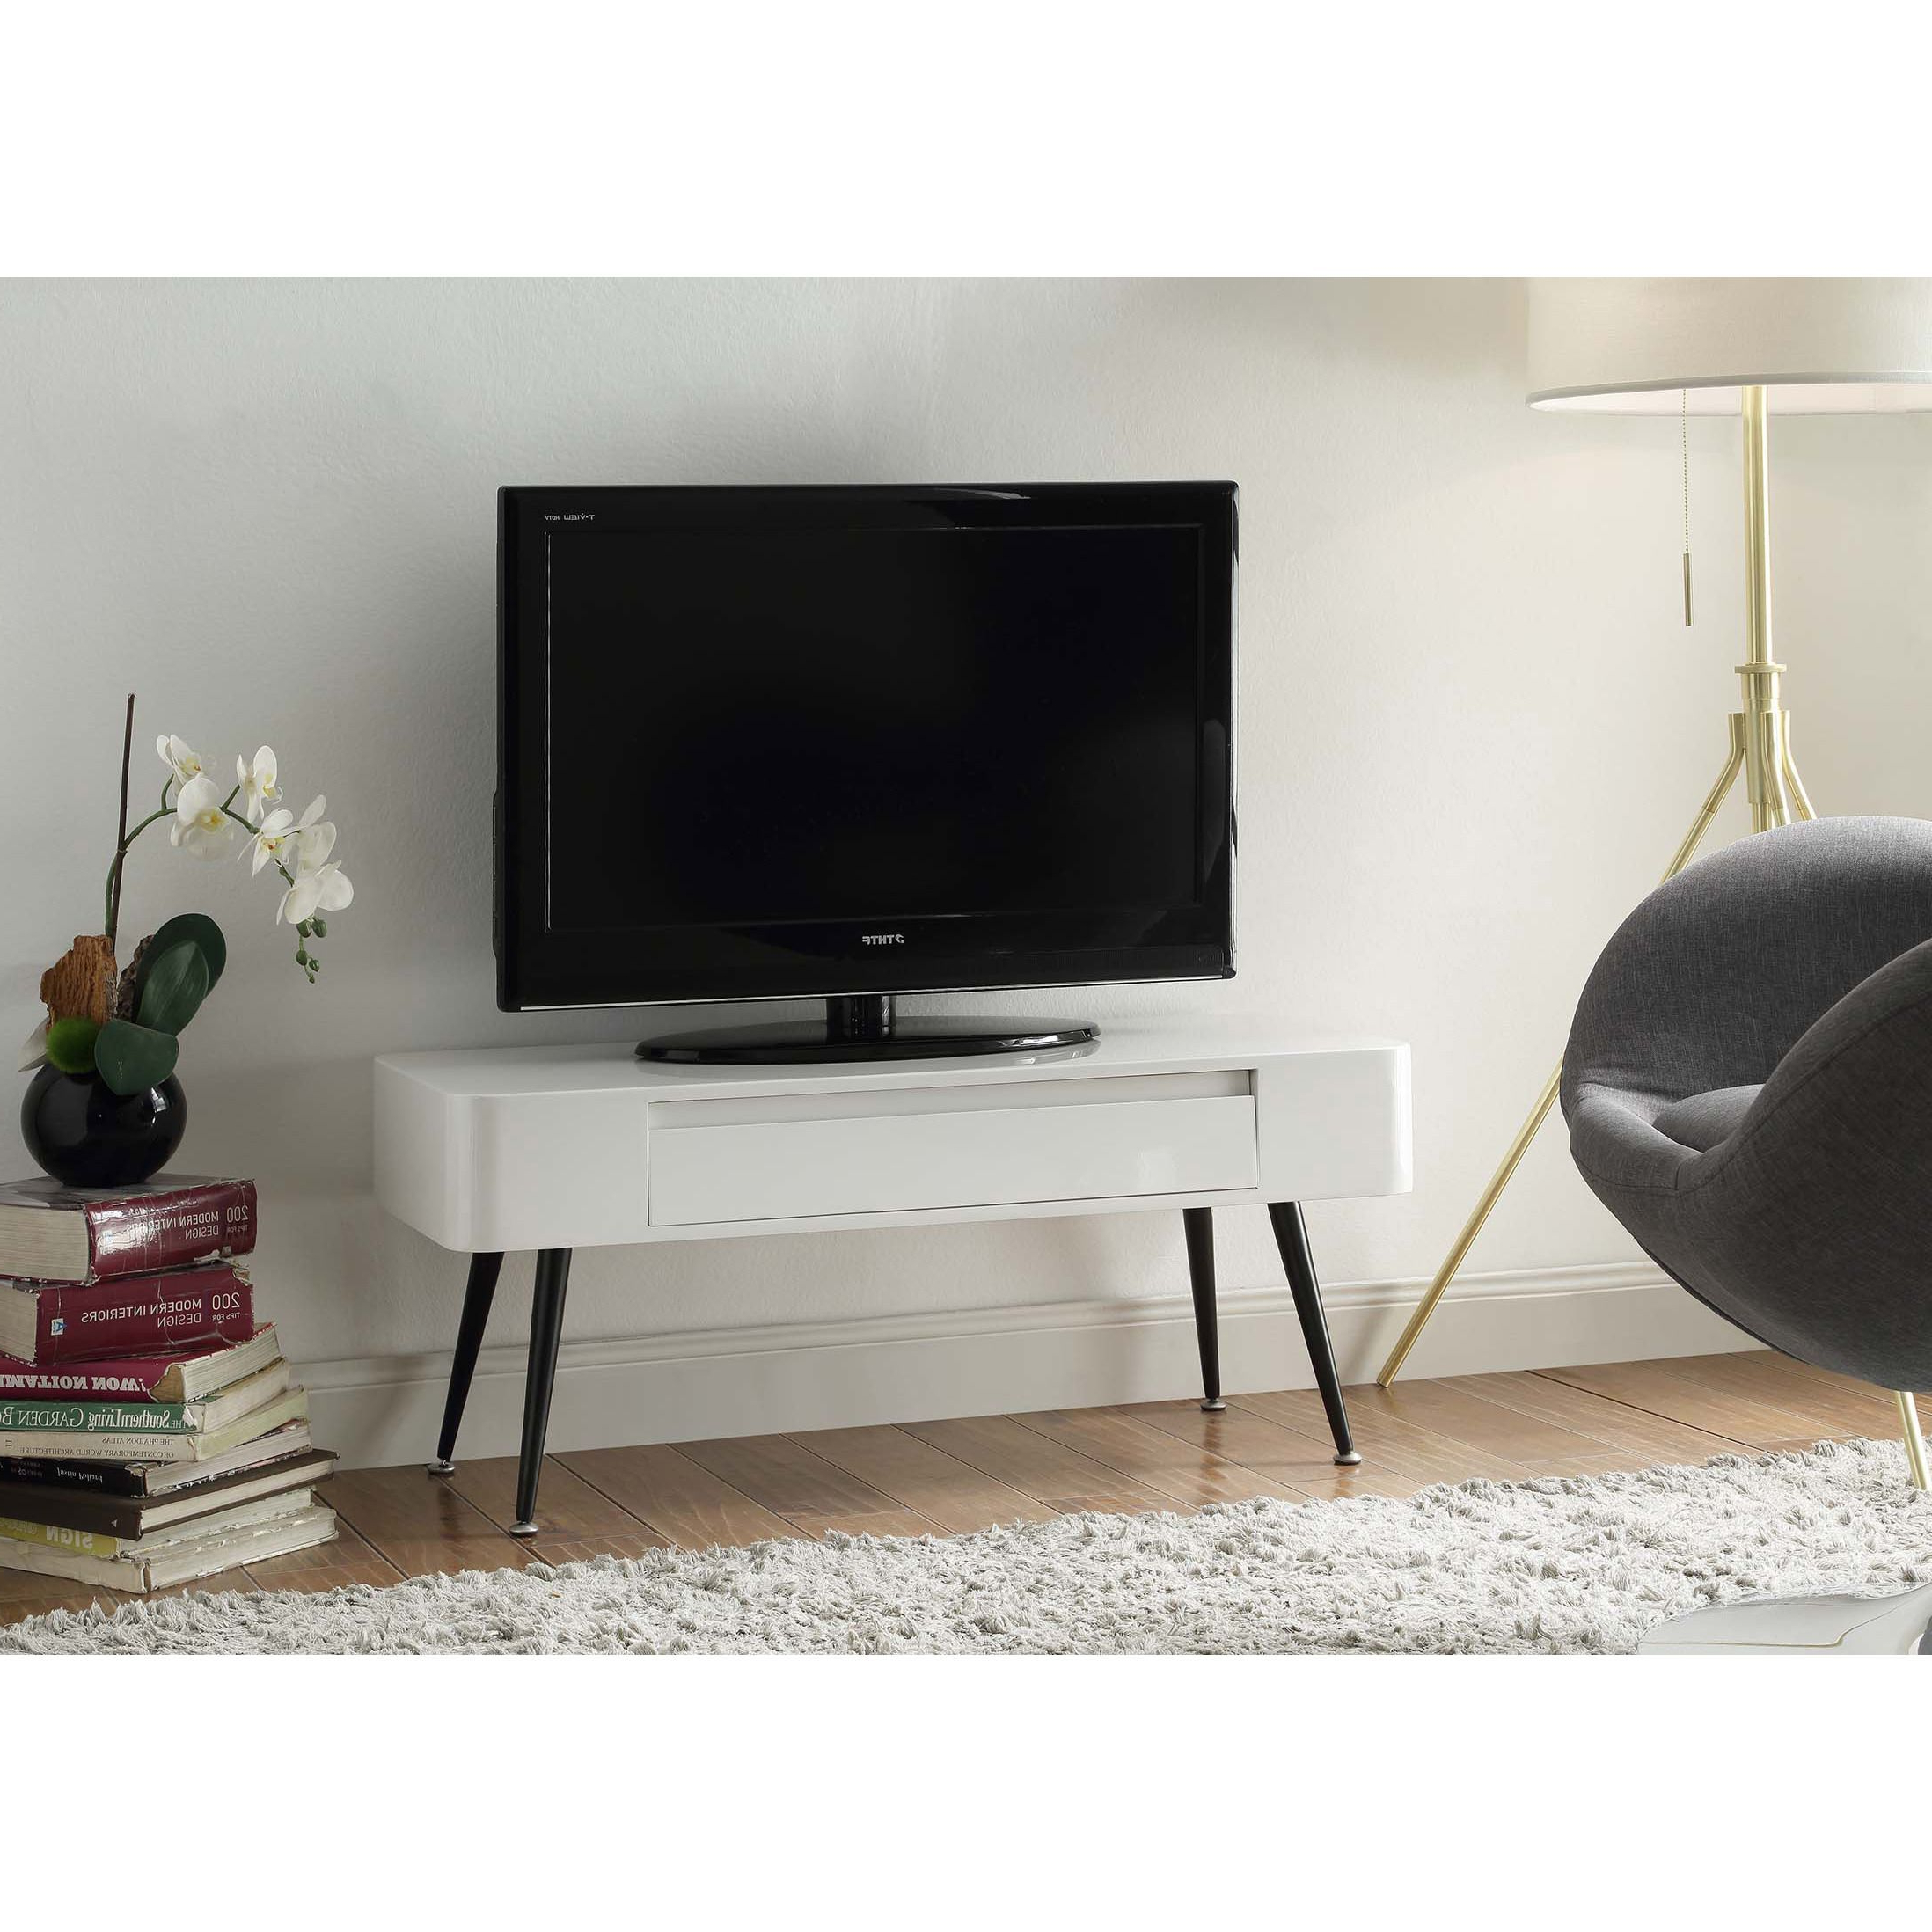 House Your Television Set On This Simple Yet Stylish Tv Stand (View 6 of 20)